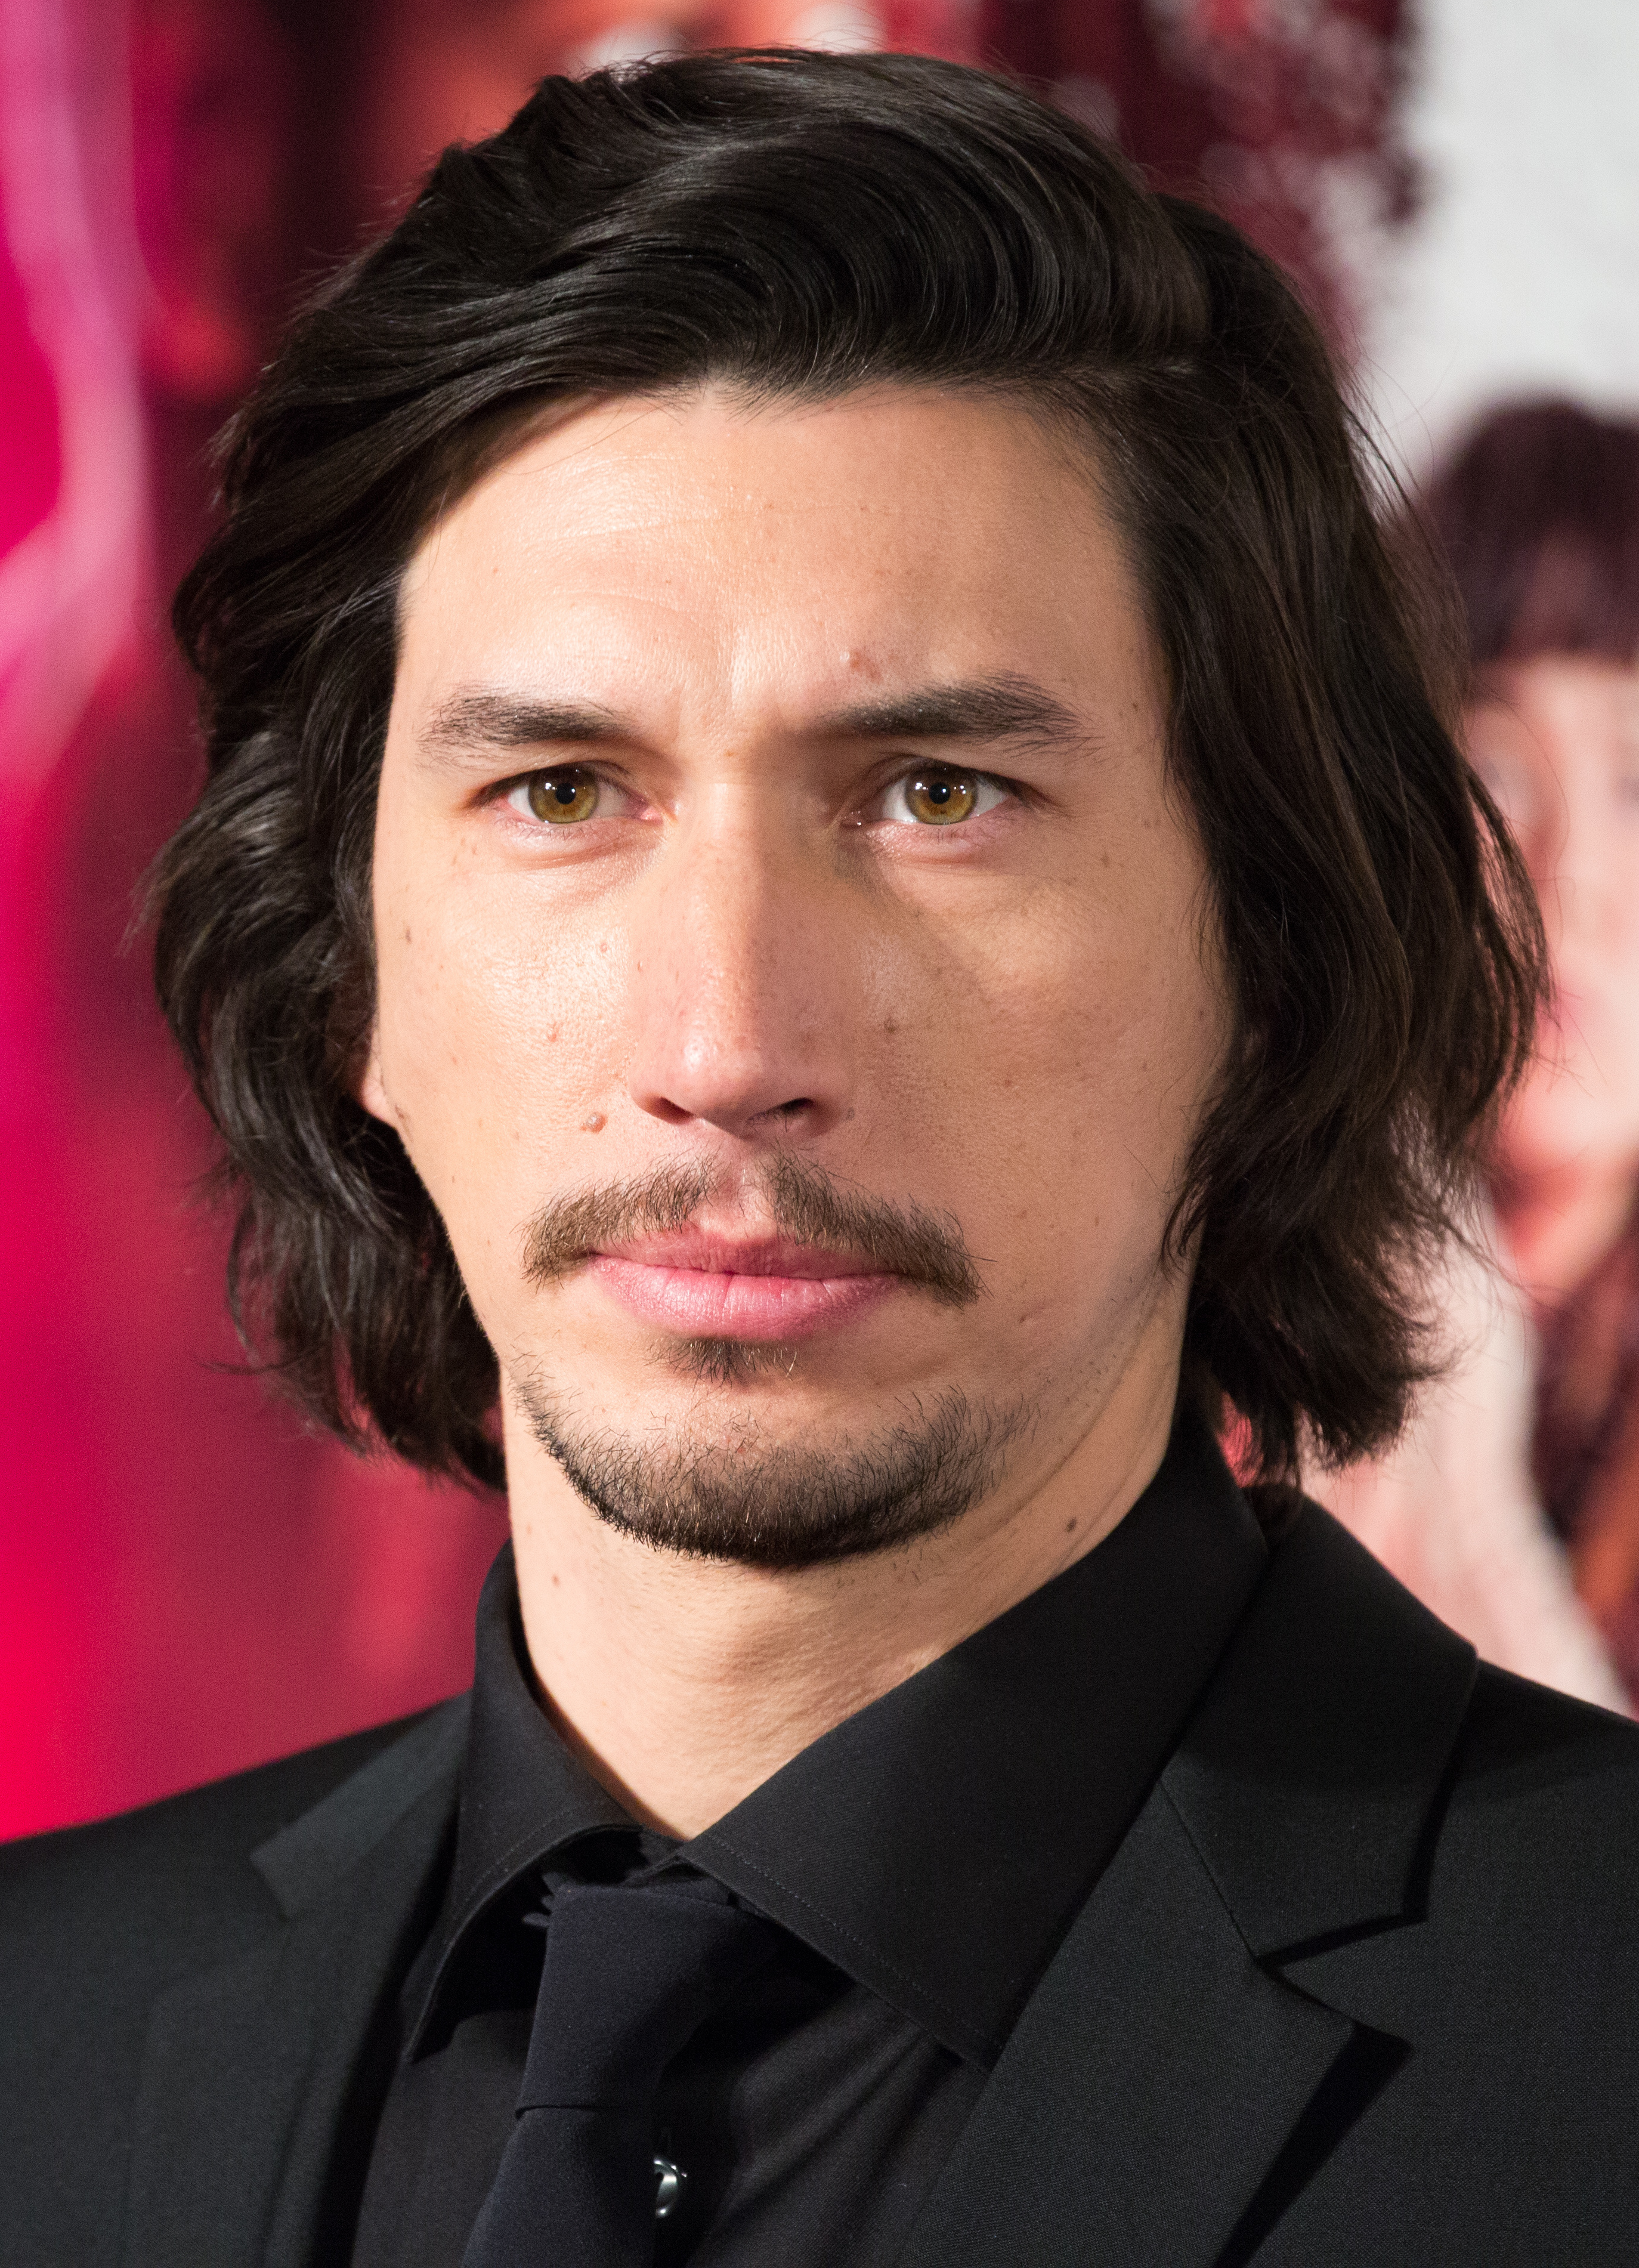 The 34-year old son of father Joe Douglas Driver and mother Nancy  Wright Adam Driver in 2018 photo. Adam Driver earned a  million dollar salary - leaving the net worth at 2 million in 2018